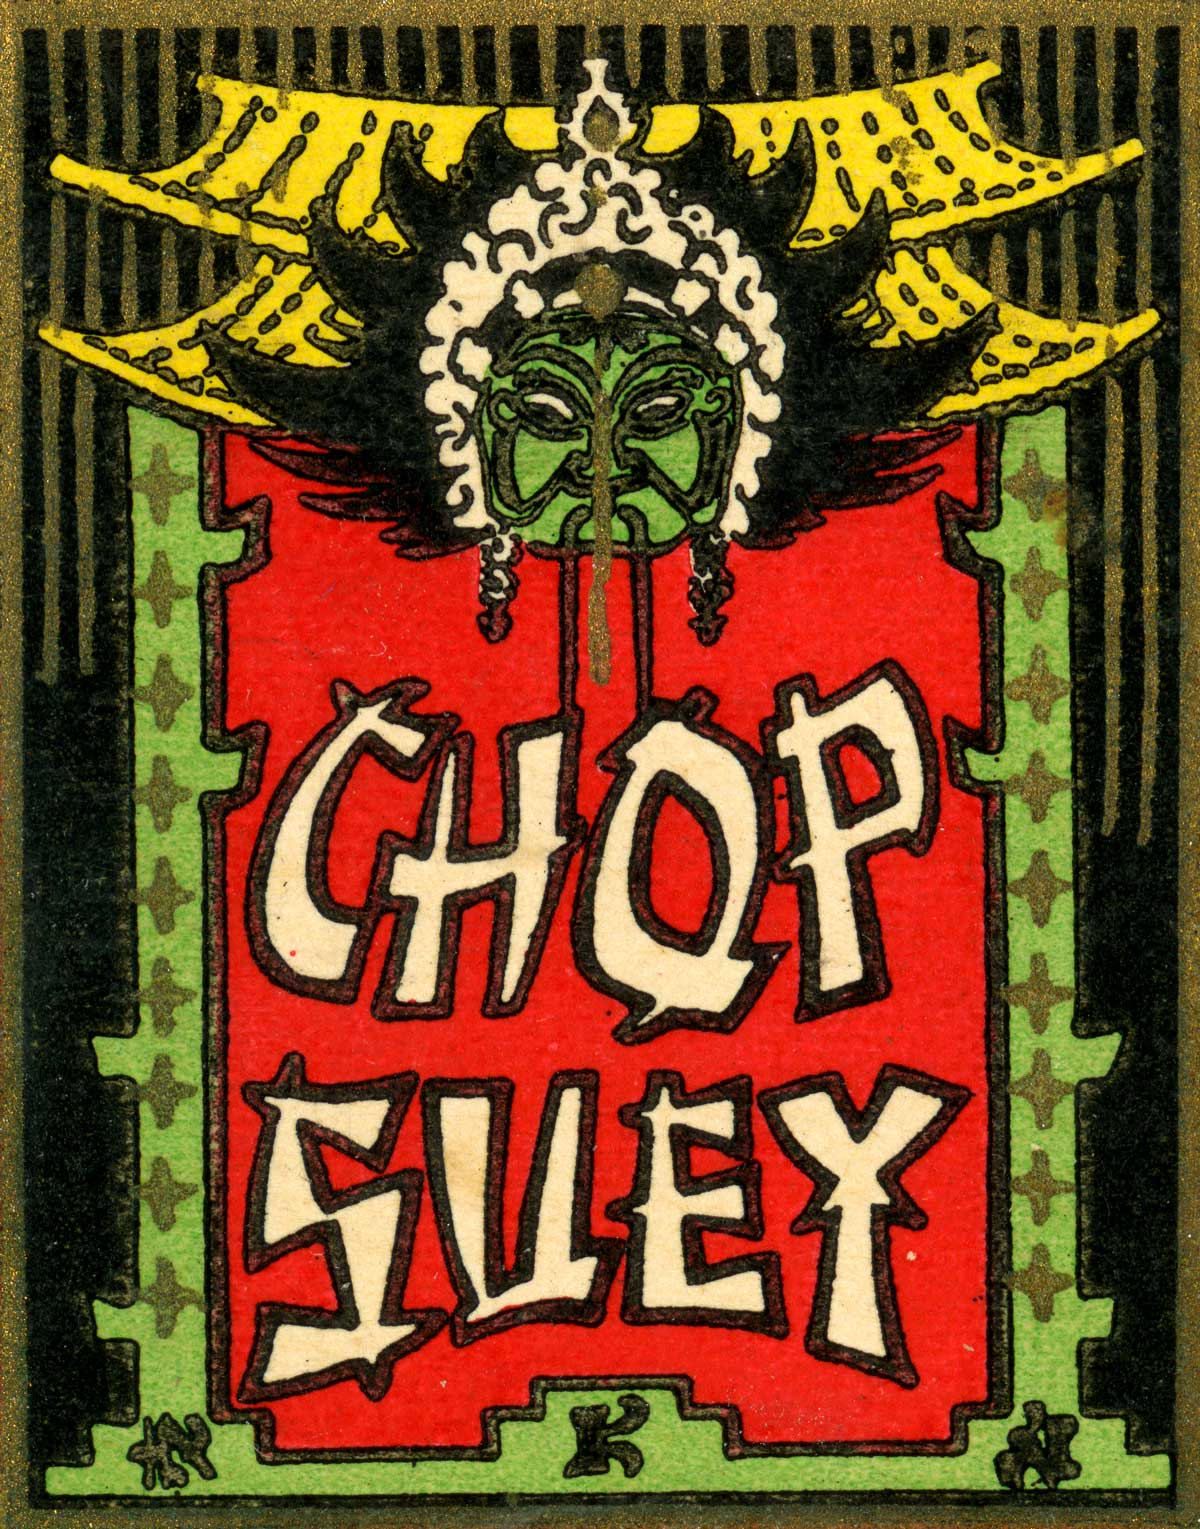 Chop suey matchbox artwork, c.1935.